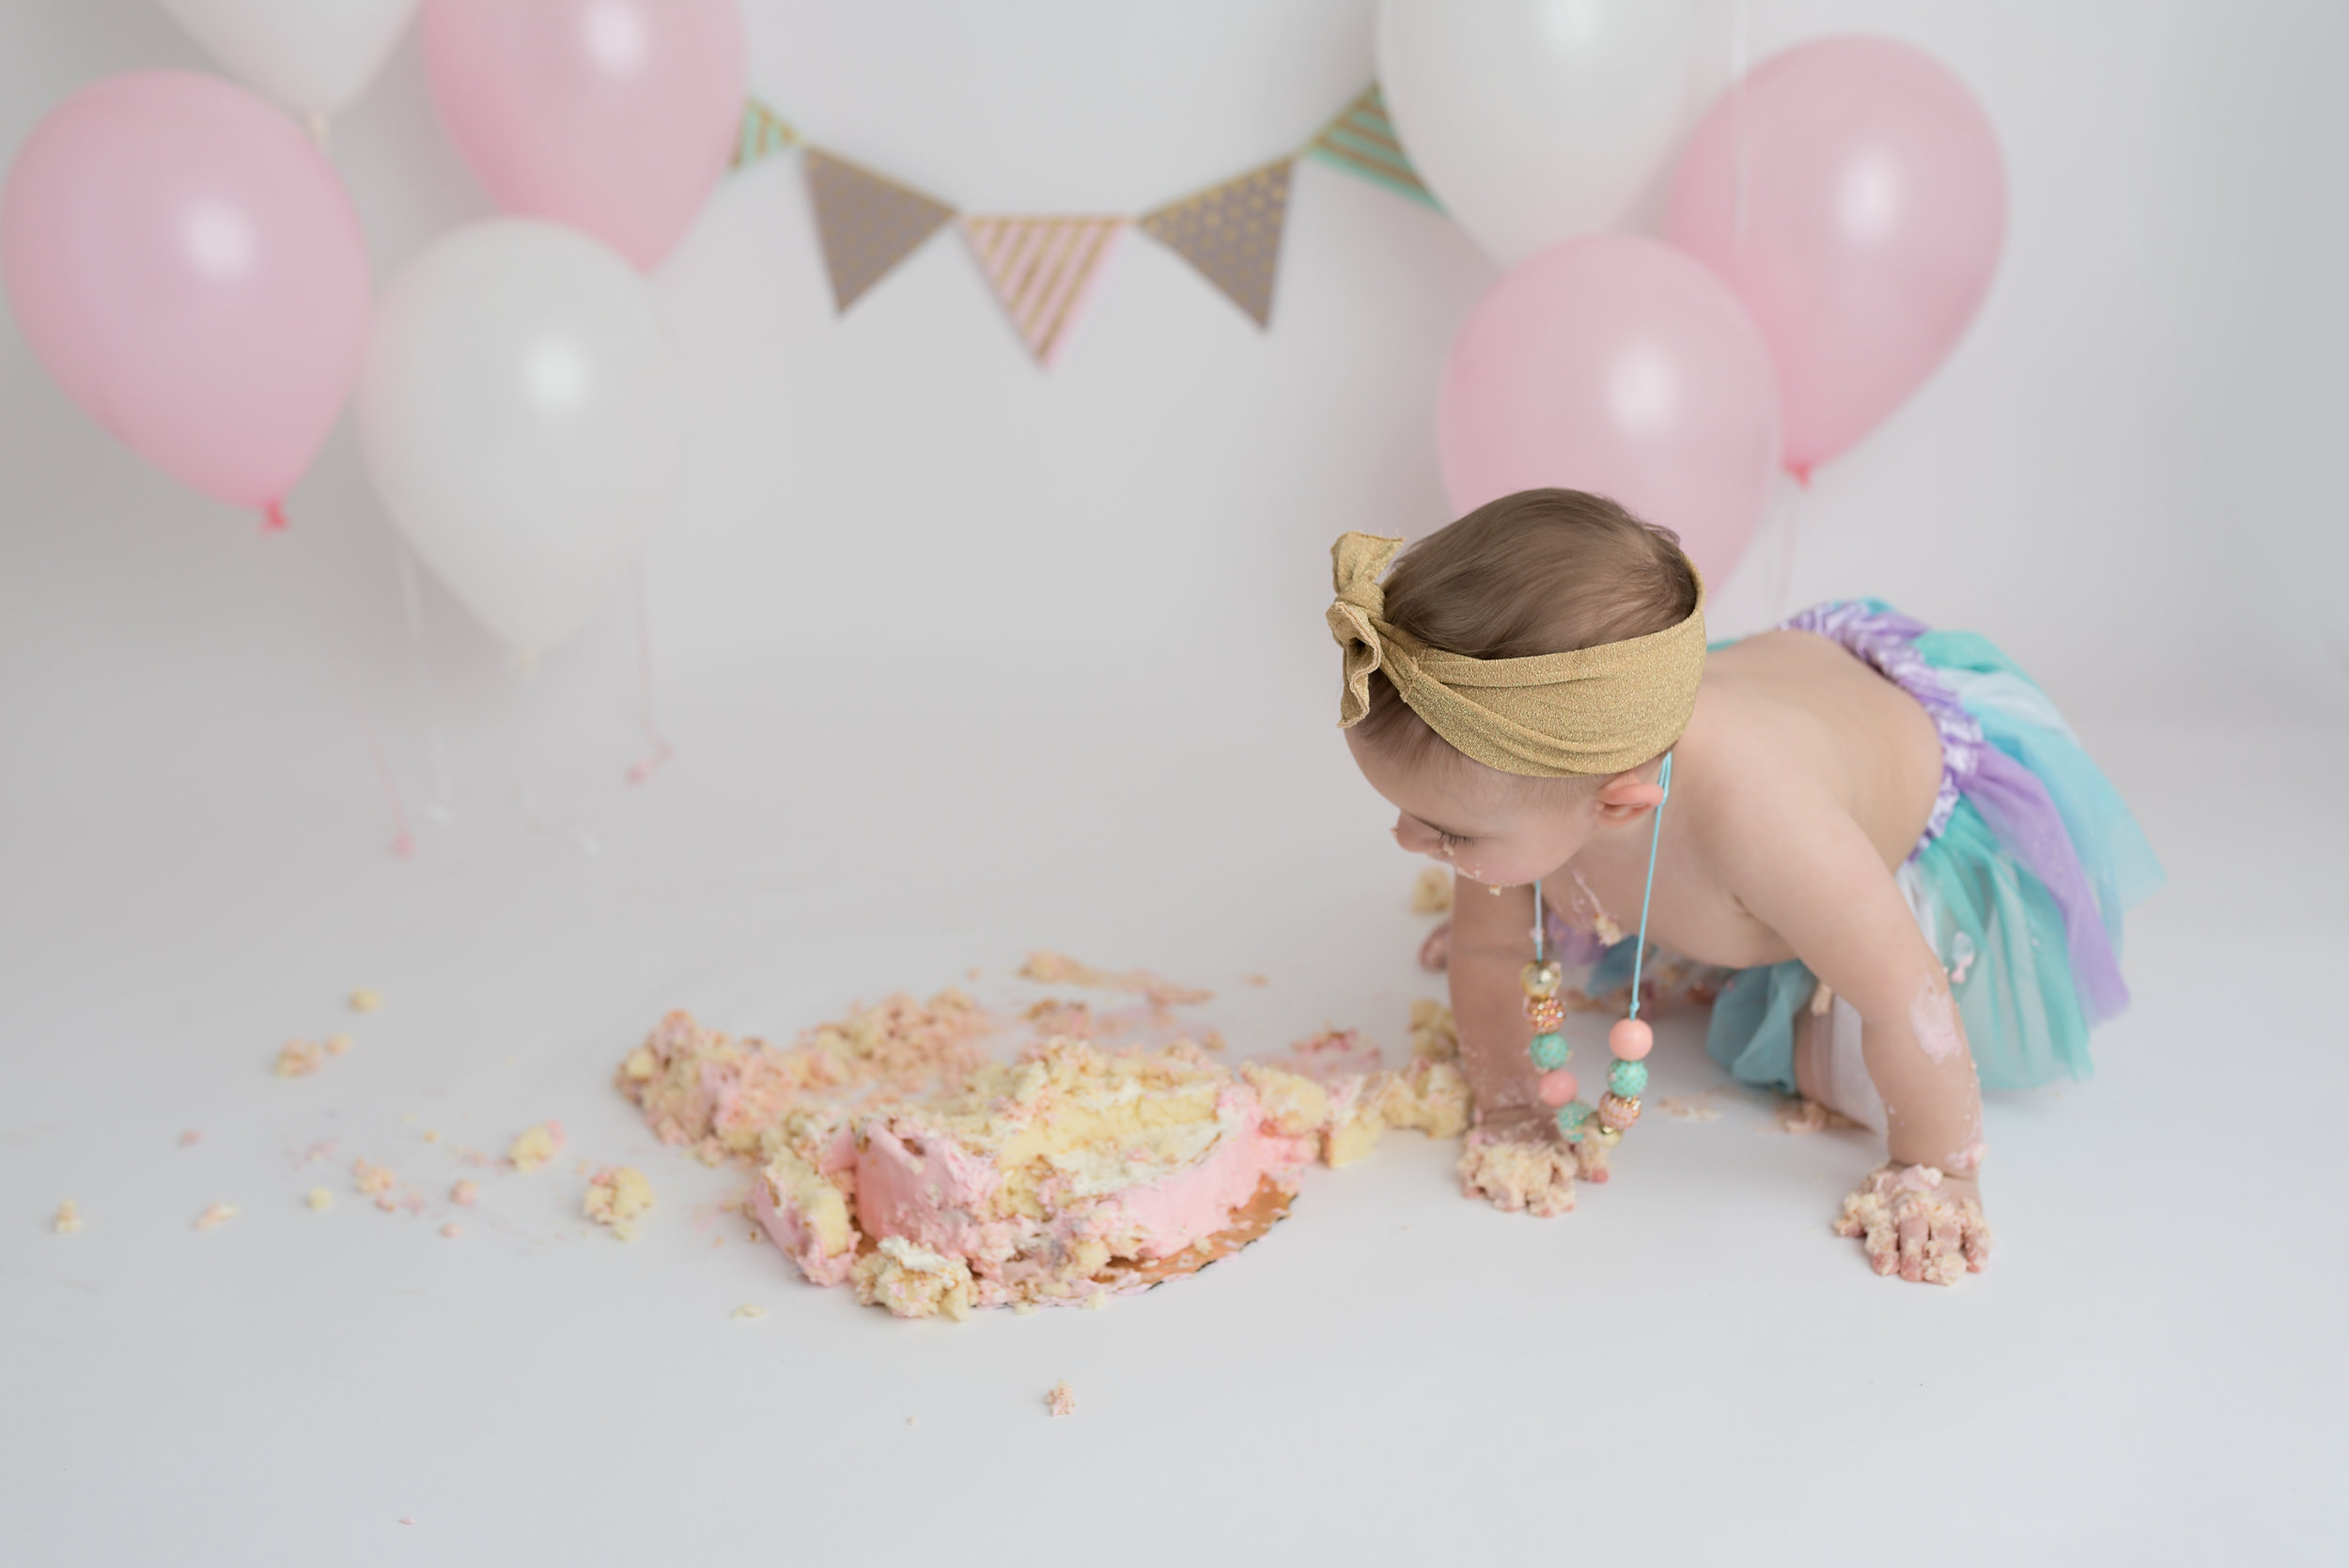 Charleston-Cake-Smash-Photographer-FSP_1185 copy.jpg